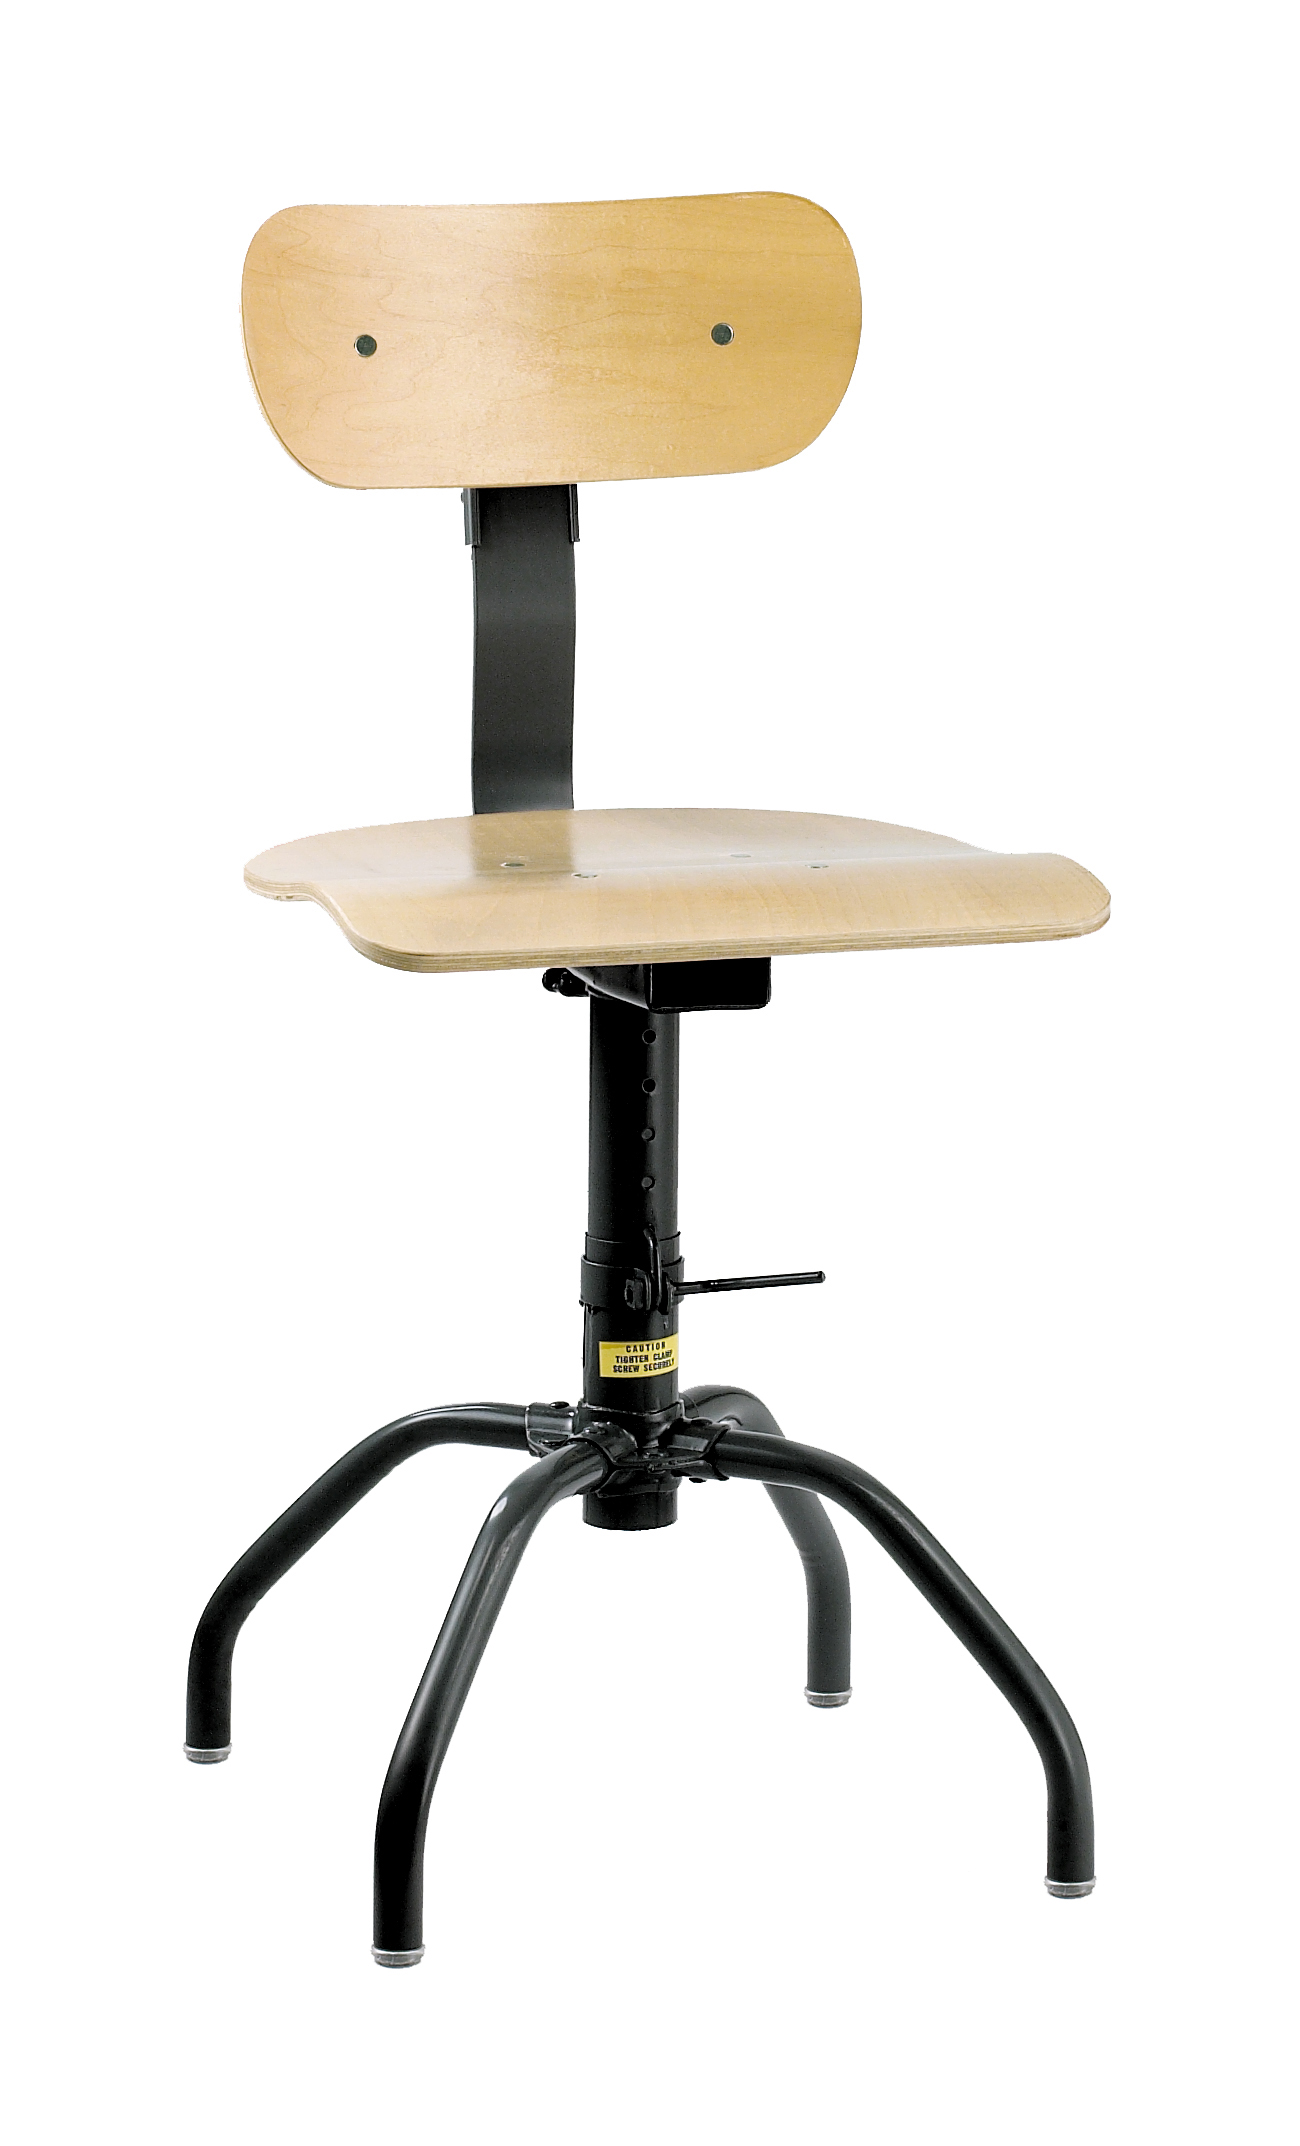 chair leg glides in a half bevco 1200 4 plywood w plastic